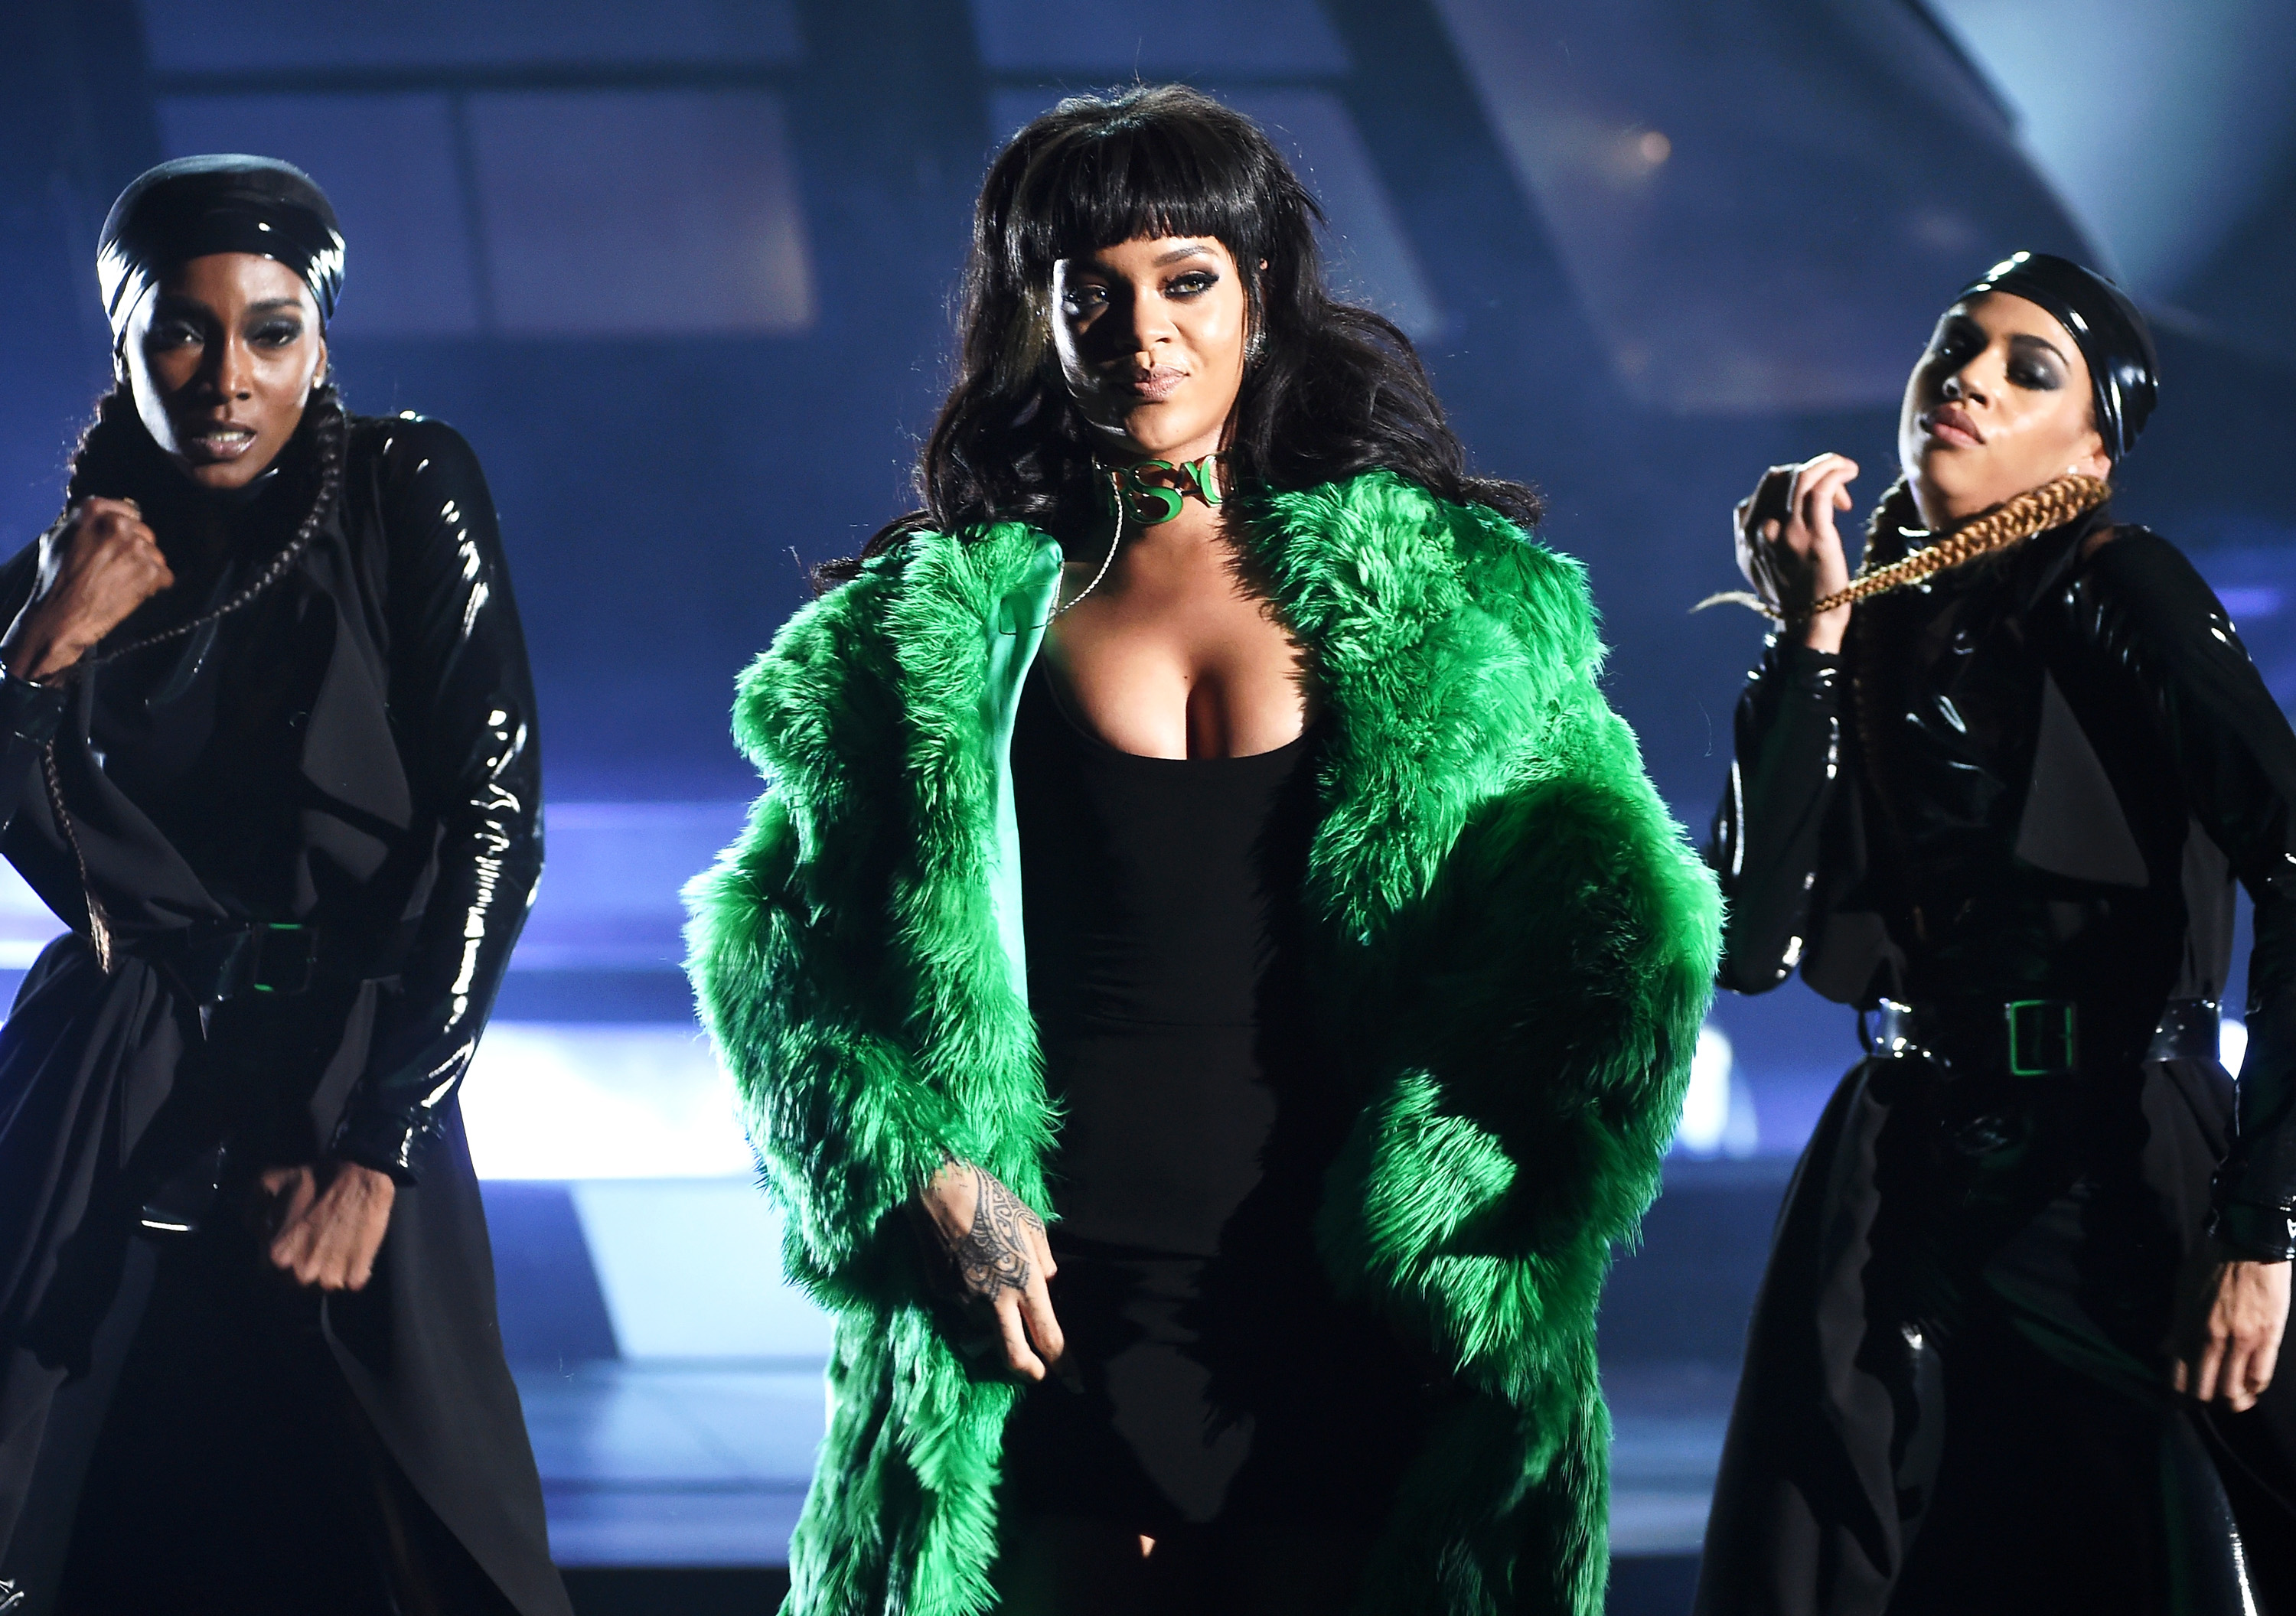 LOS ANGELES, CA - MARCH 29:  Singer Rihanna performs onstage during the 2015 iHeartRadio Music Awards which broadcasted live